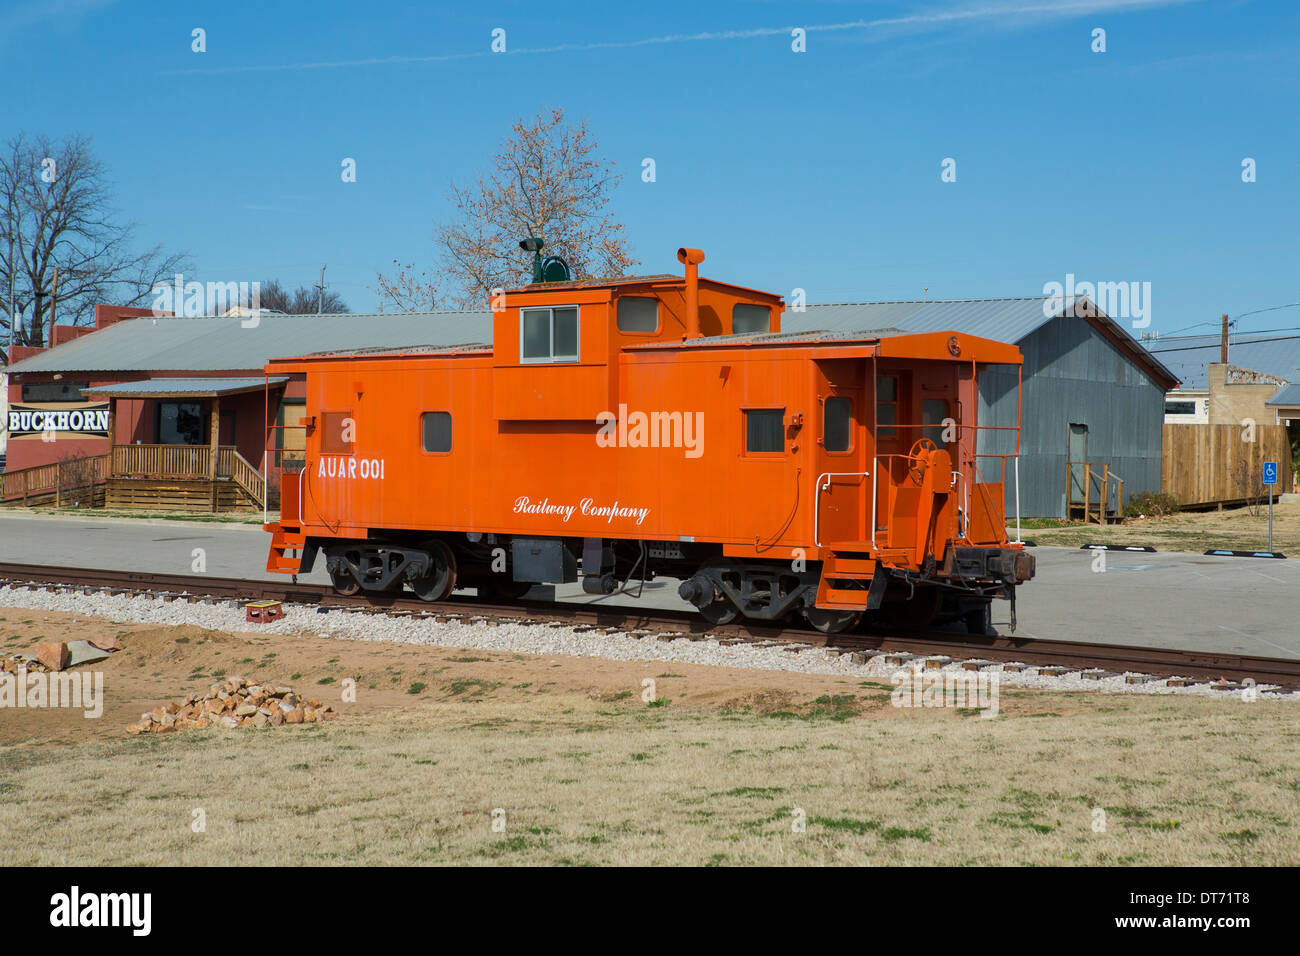 A caboose at the Railroad museum in Llano, Texas - Stock Image